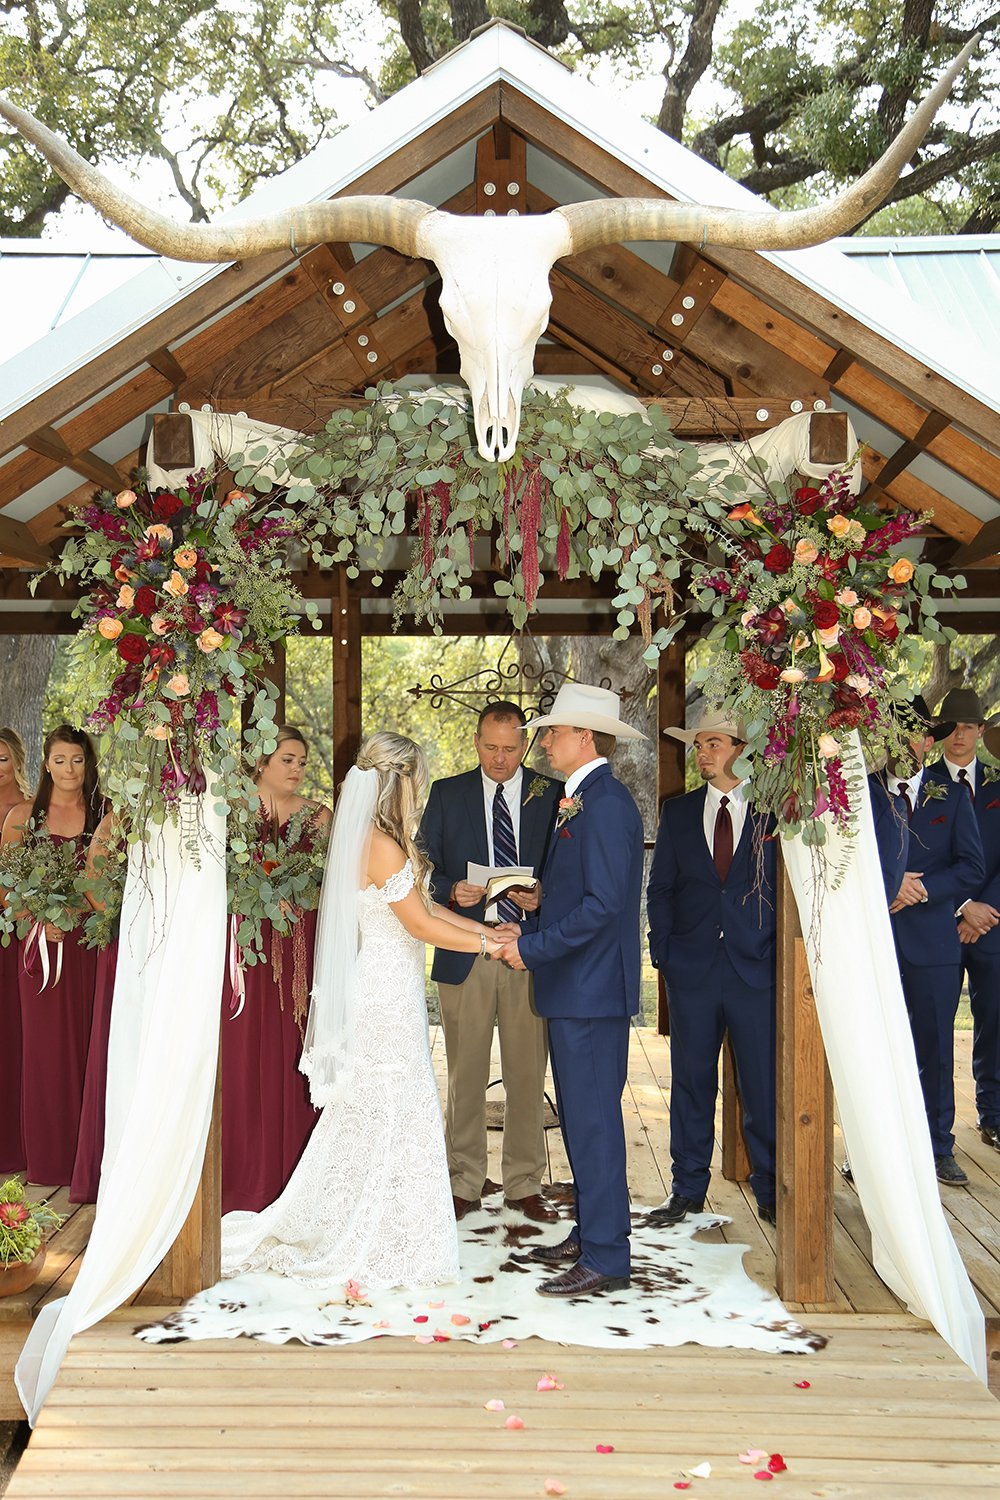 outdoor wedding ceremony - rustic